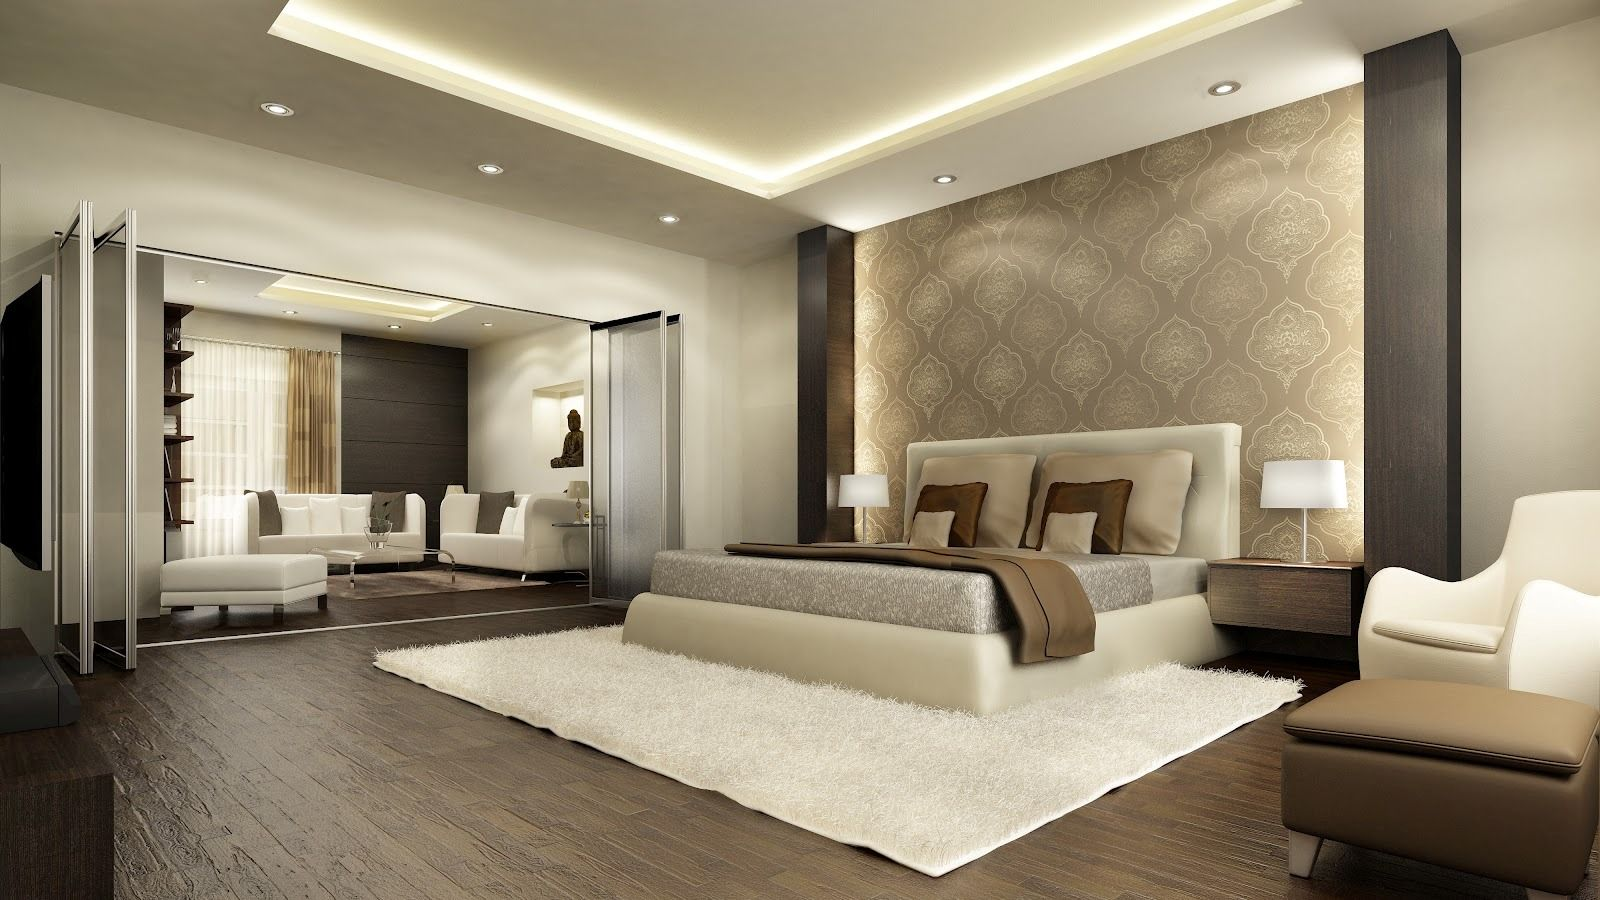 Explore Modern Luxury Bedroom And More